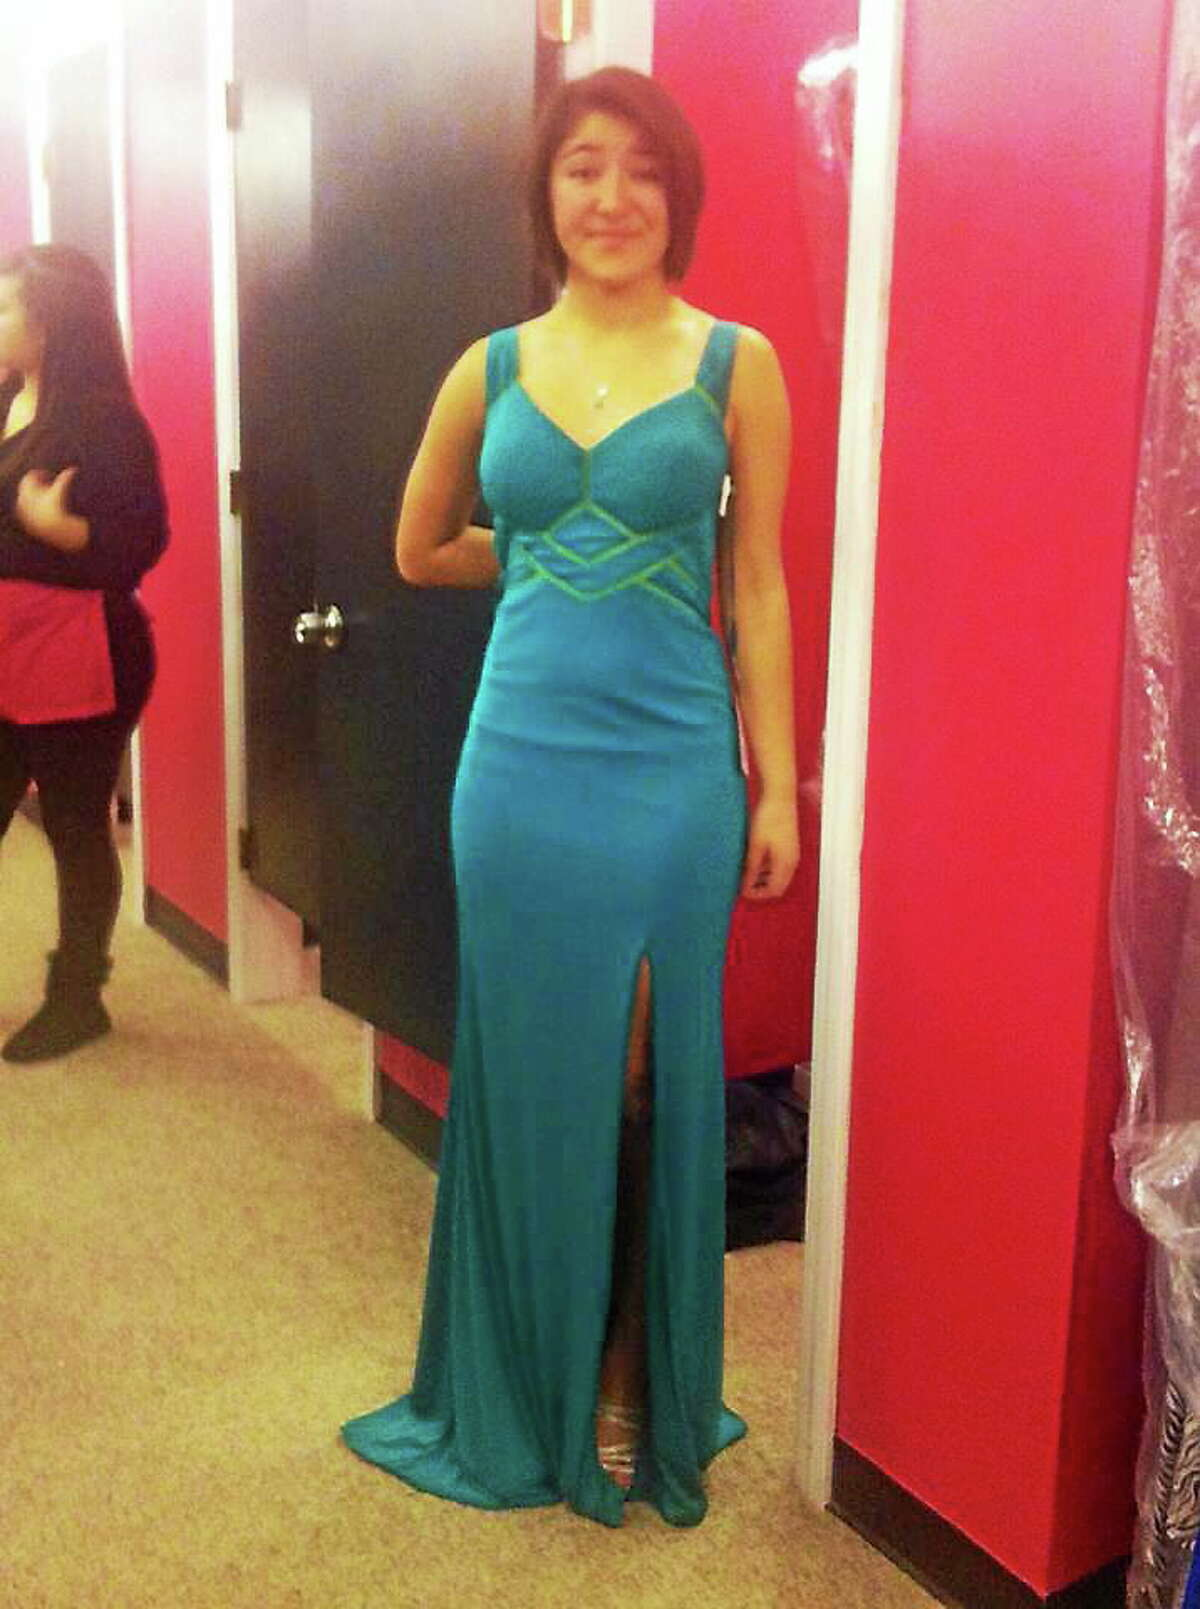 """Maren Sanchez posted a photo to Facebook """"JLHS Prom Dresses 2014"""" a photo of her trying on her prom dress on March 2 with the caption, """"Yay so excited!!"""""""